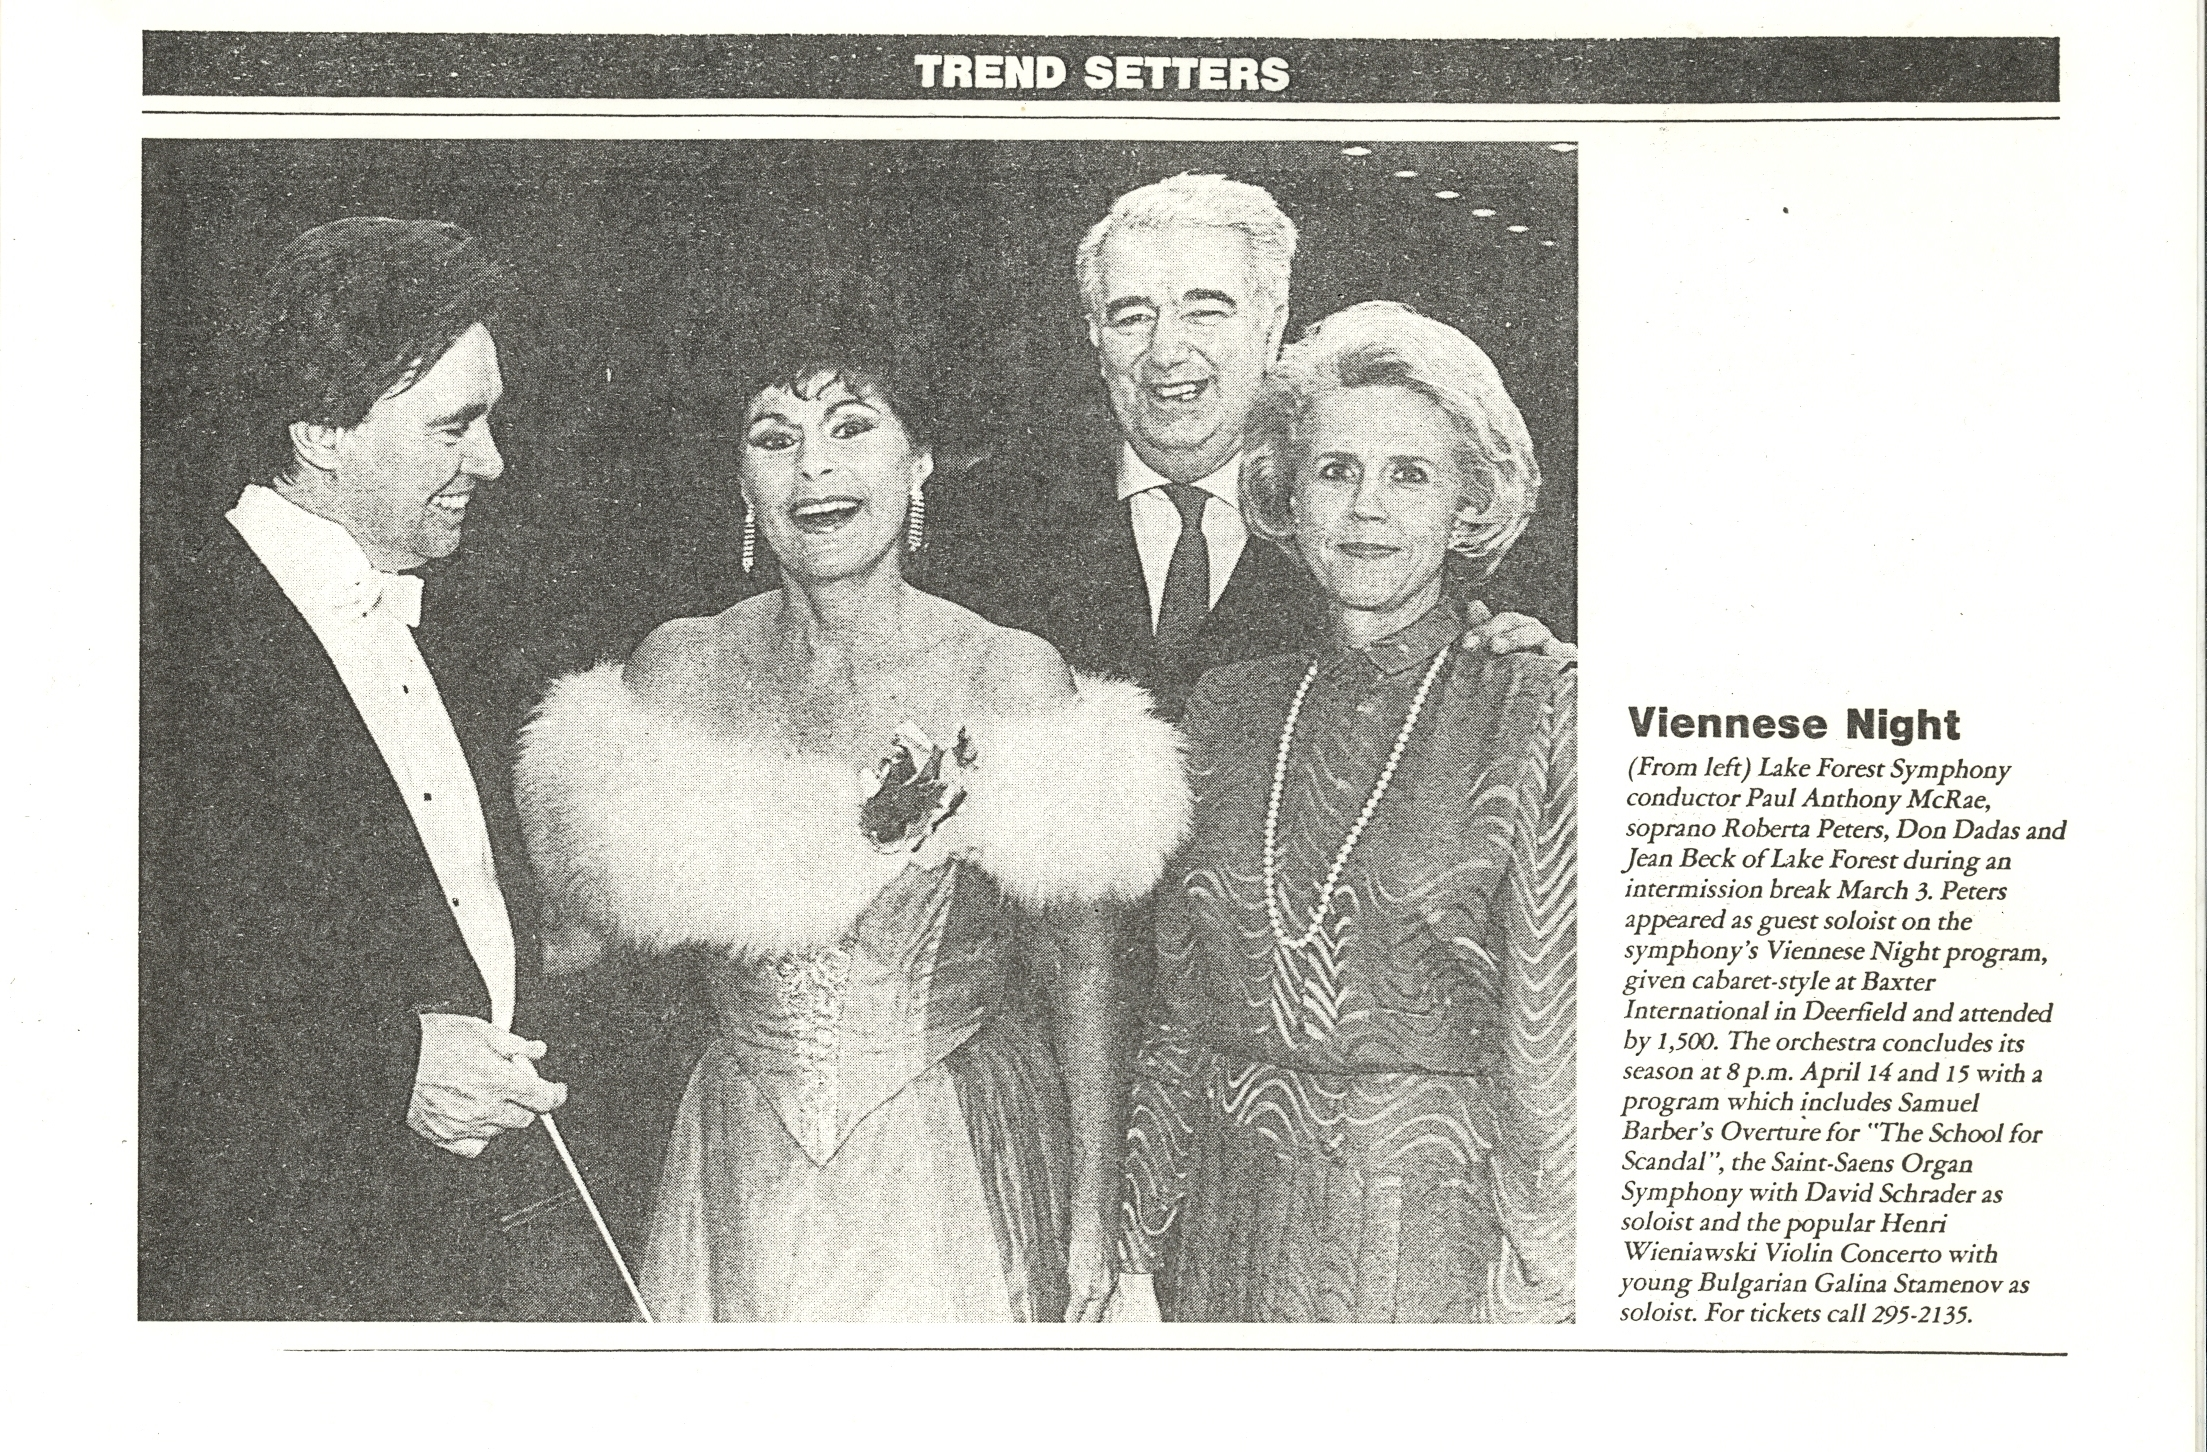 March 1989 PP re Viennese Night gala0001.jpg